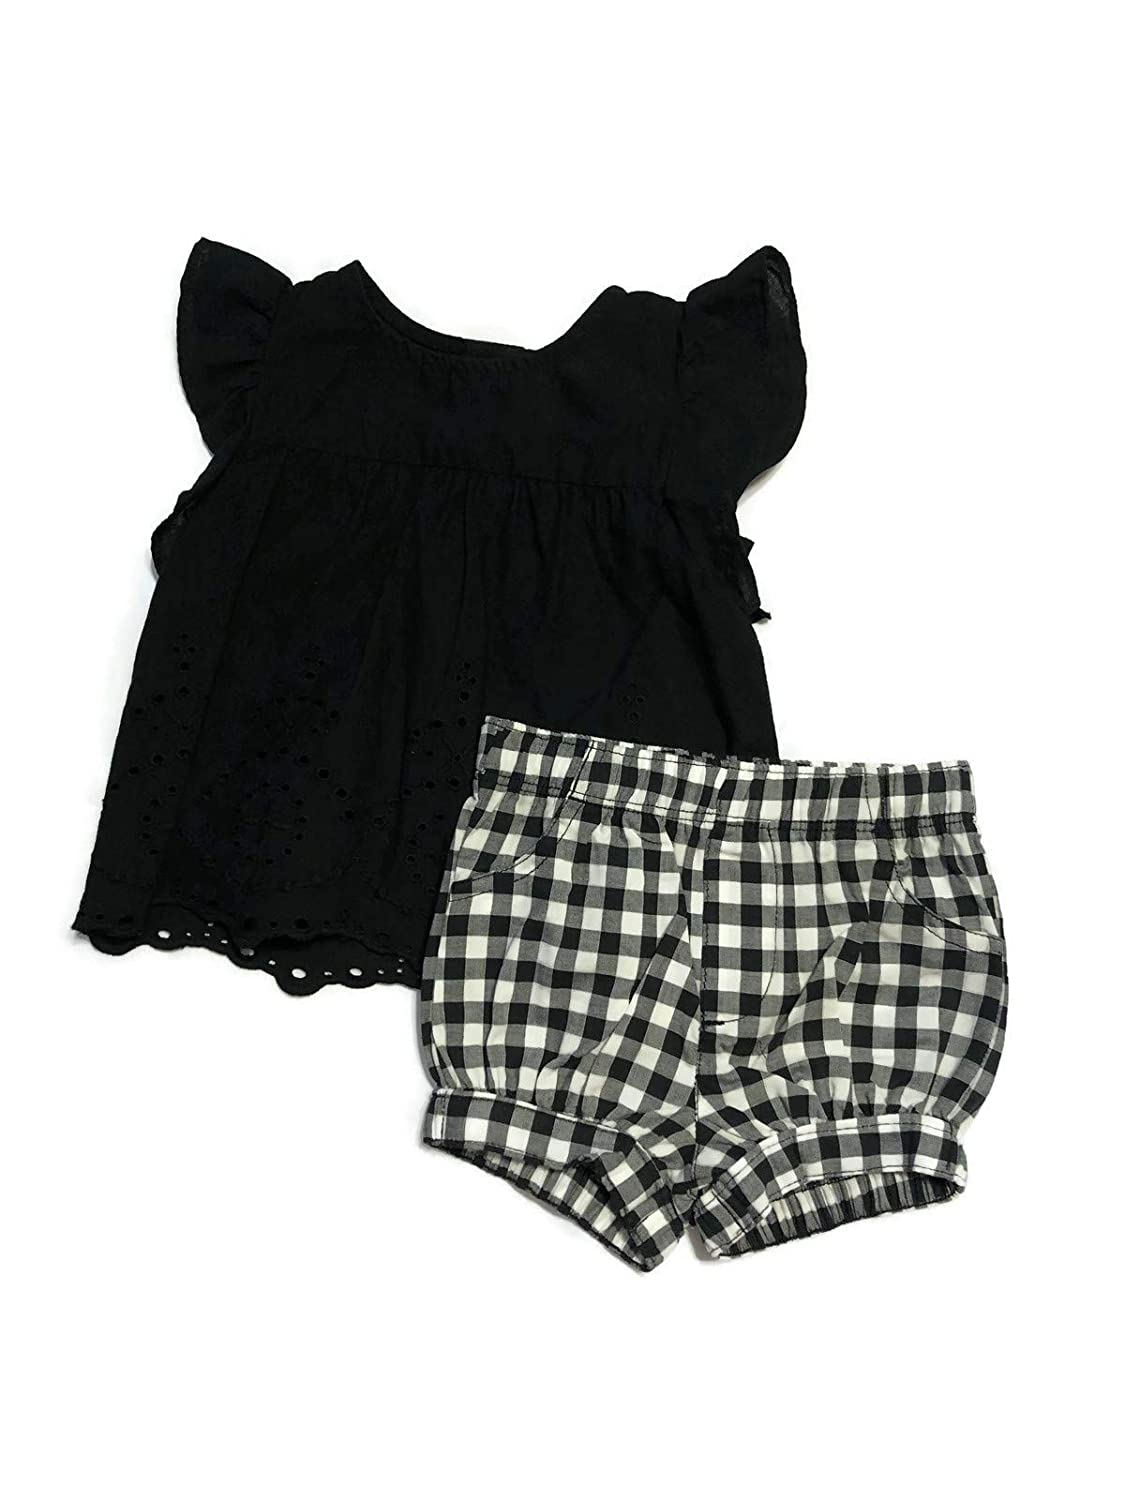 Carters Baby Girls 2 Piece Black Eyelet top and Black and White Gingham Shorts 12 Months